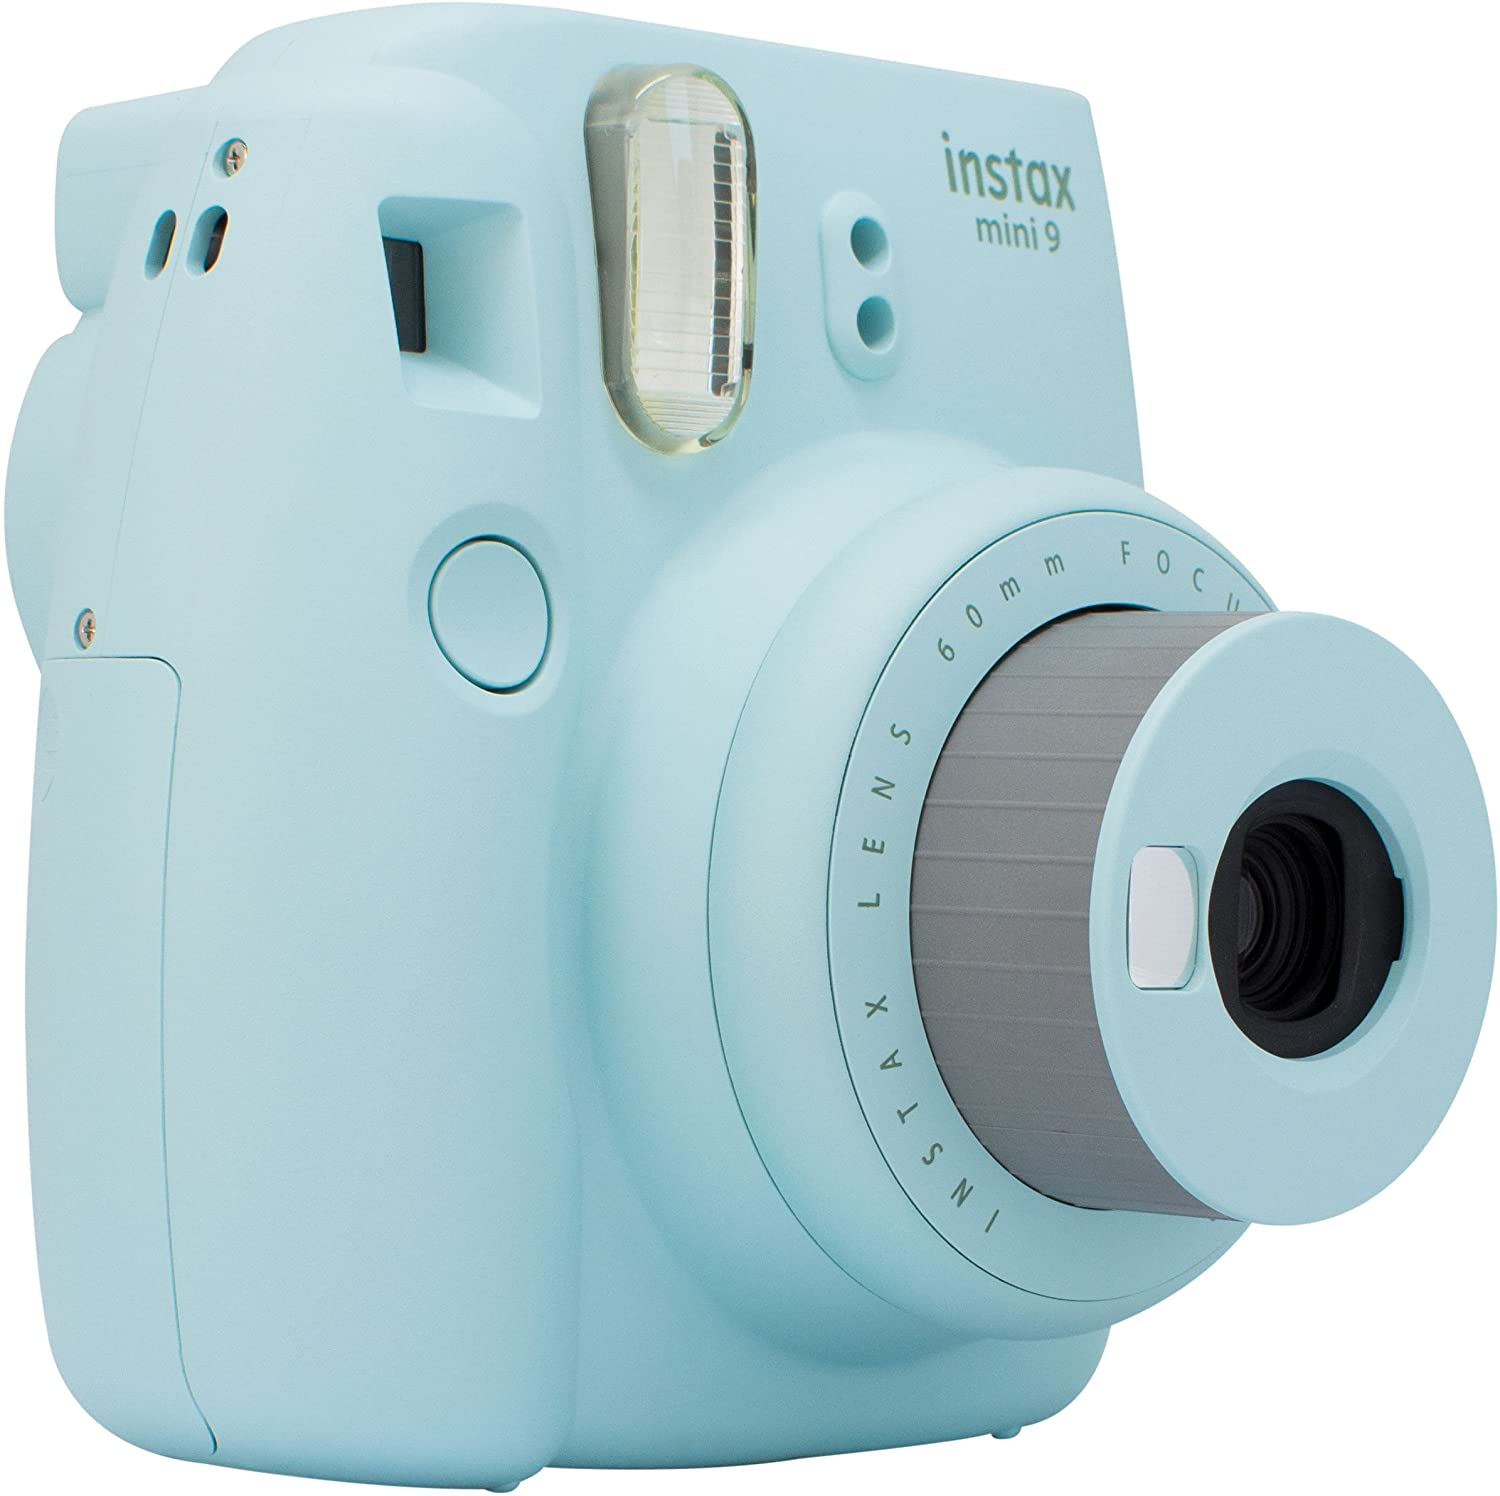 Day out checklist - Instant film camera